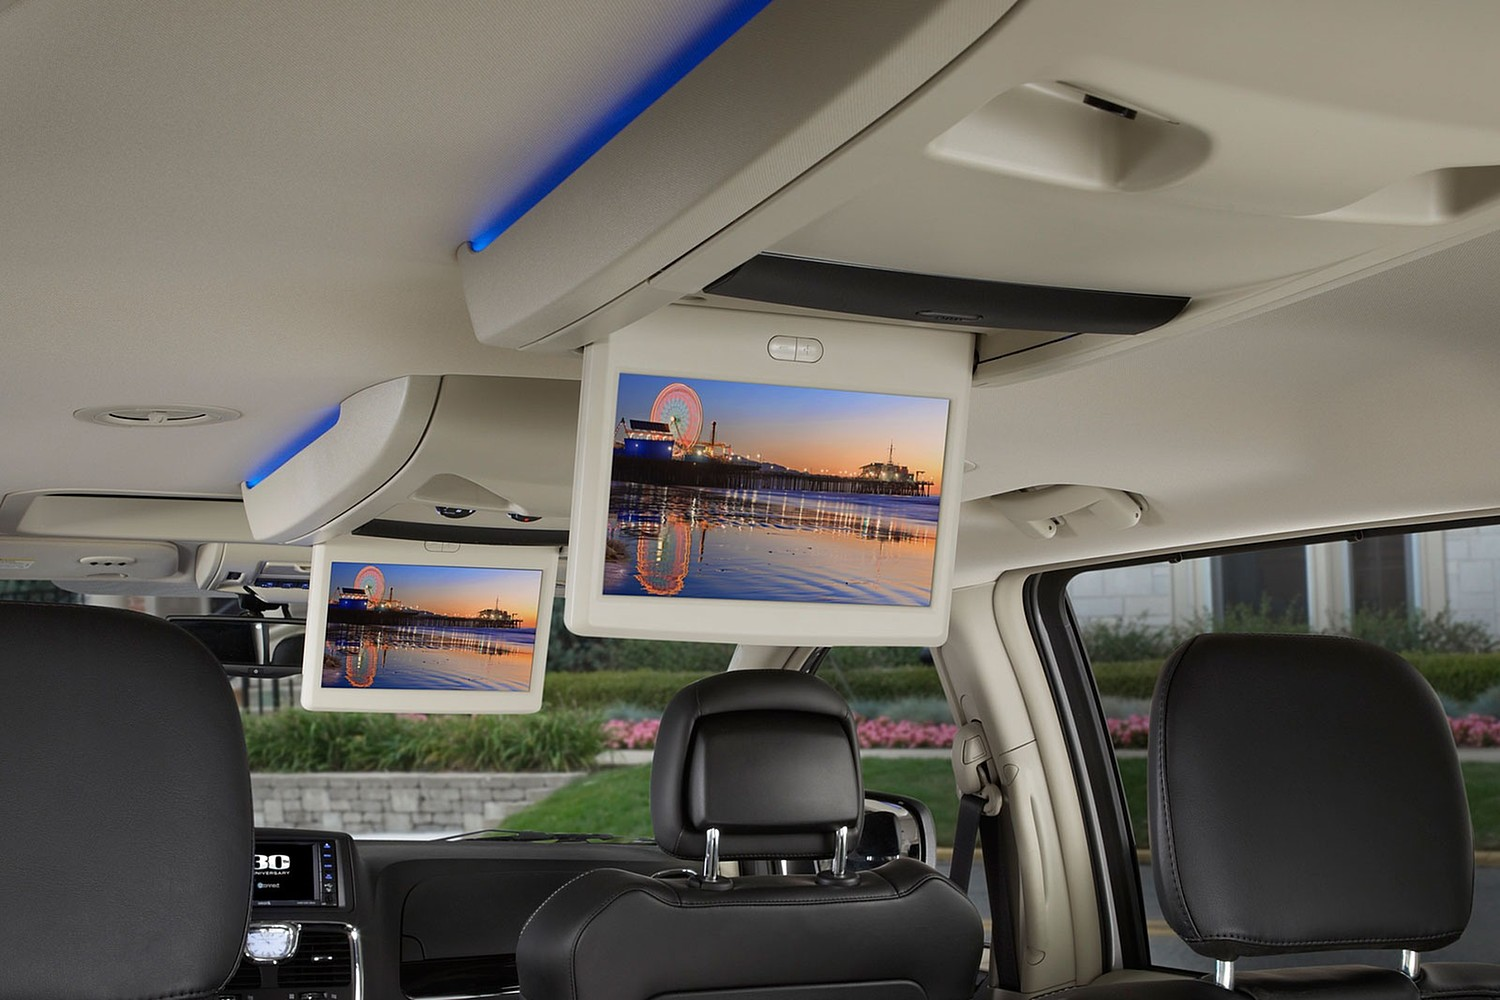 2016 Chrysler Town and Country Anniversary Edition Passenger Minivan Interior Detail